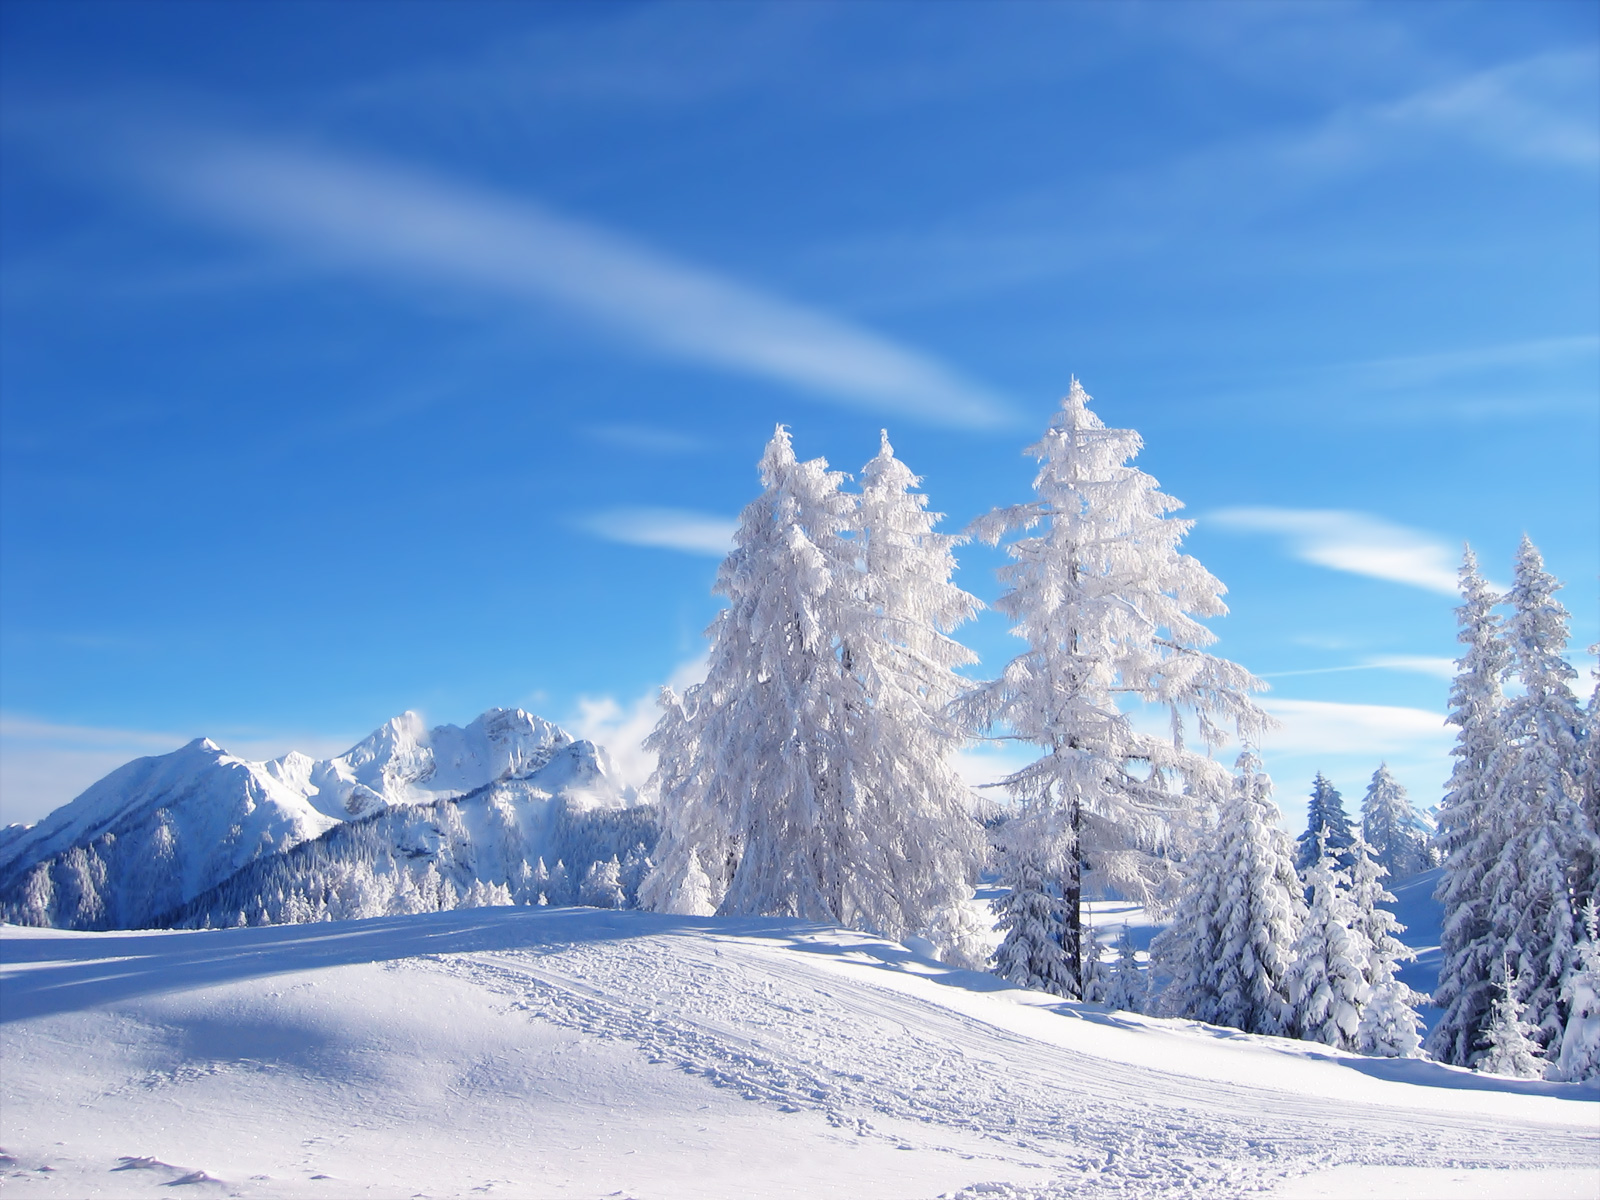 Winter Wallpapers HD Winter Wallpapers HD 1600x1200